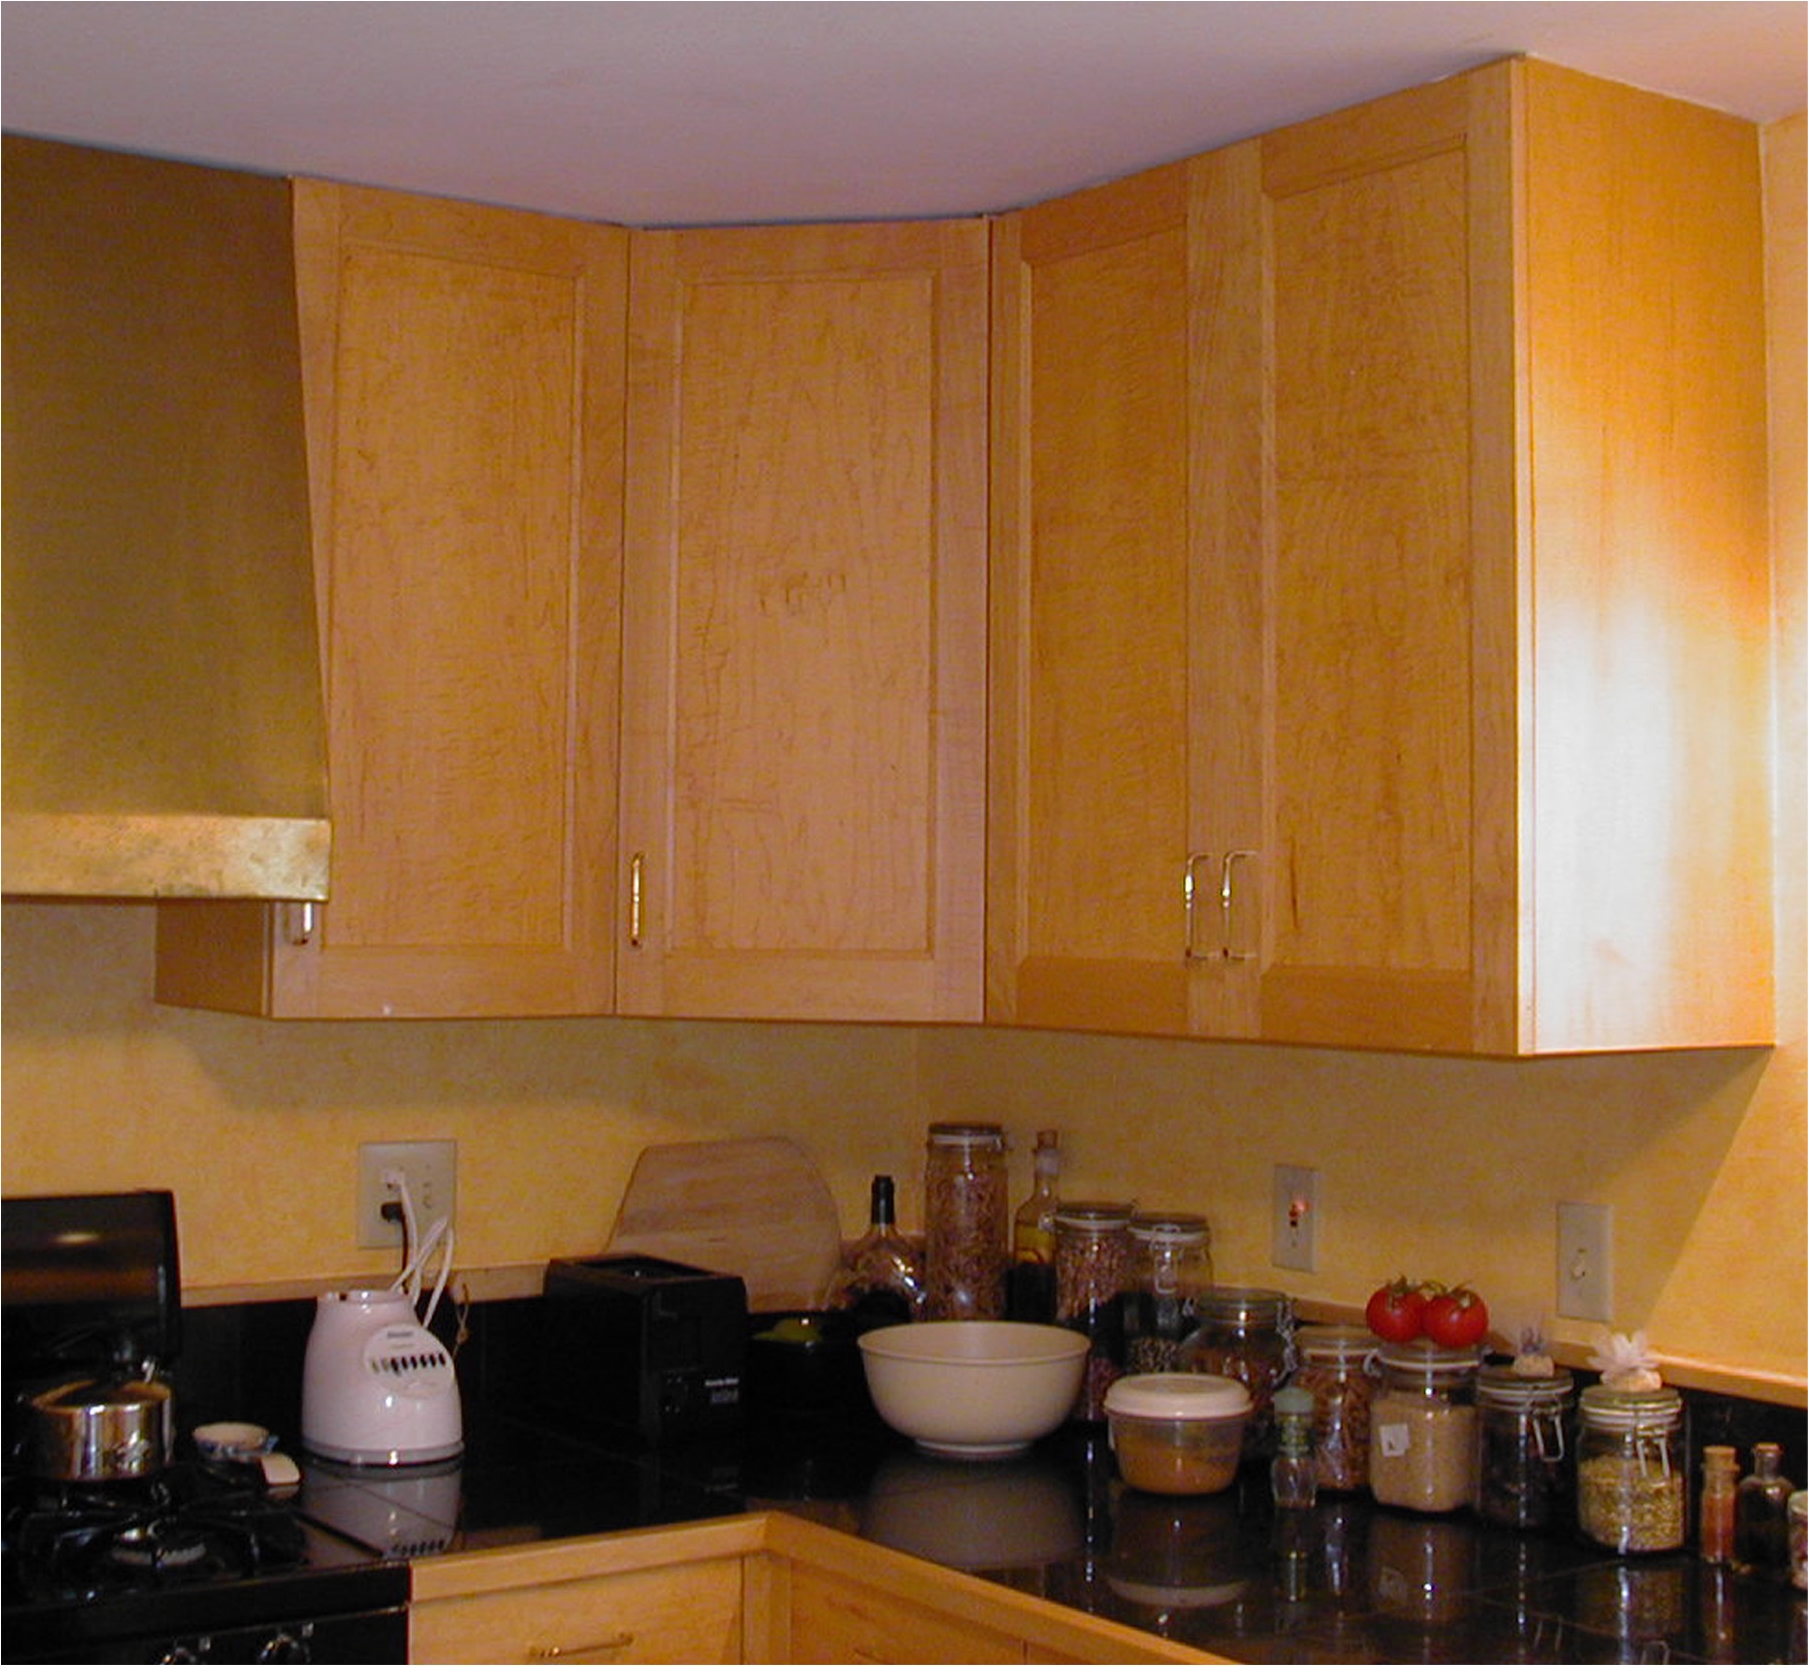 KITCHEN CABINETS SIZE - Kitchen Cabinets